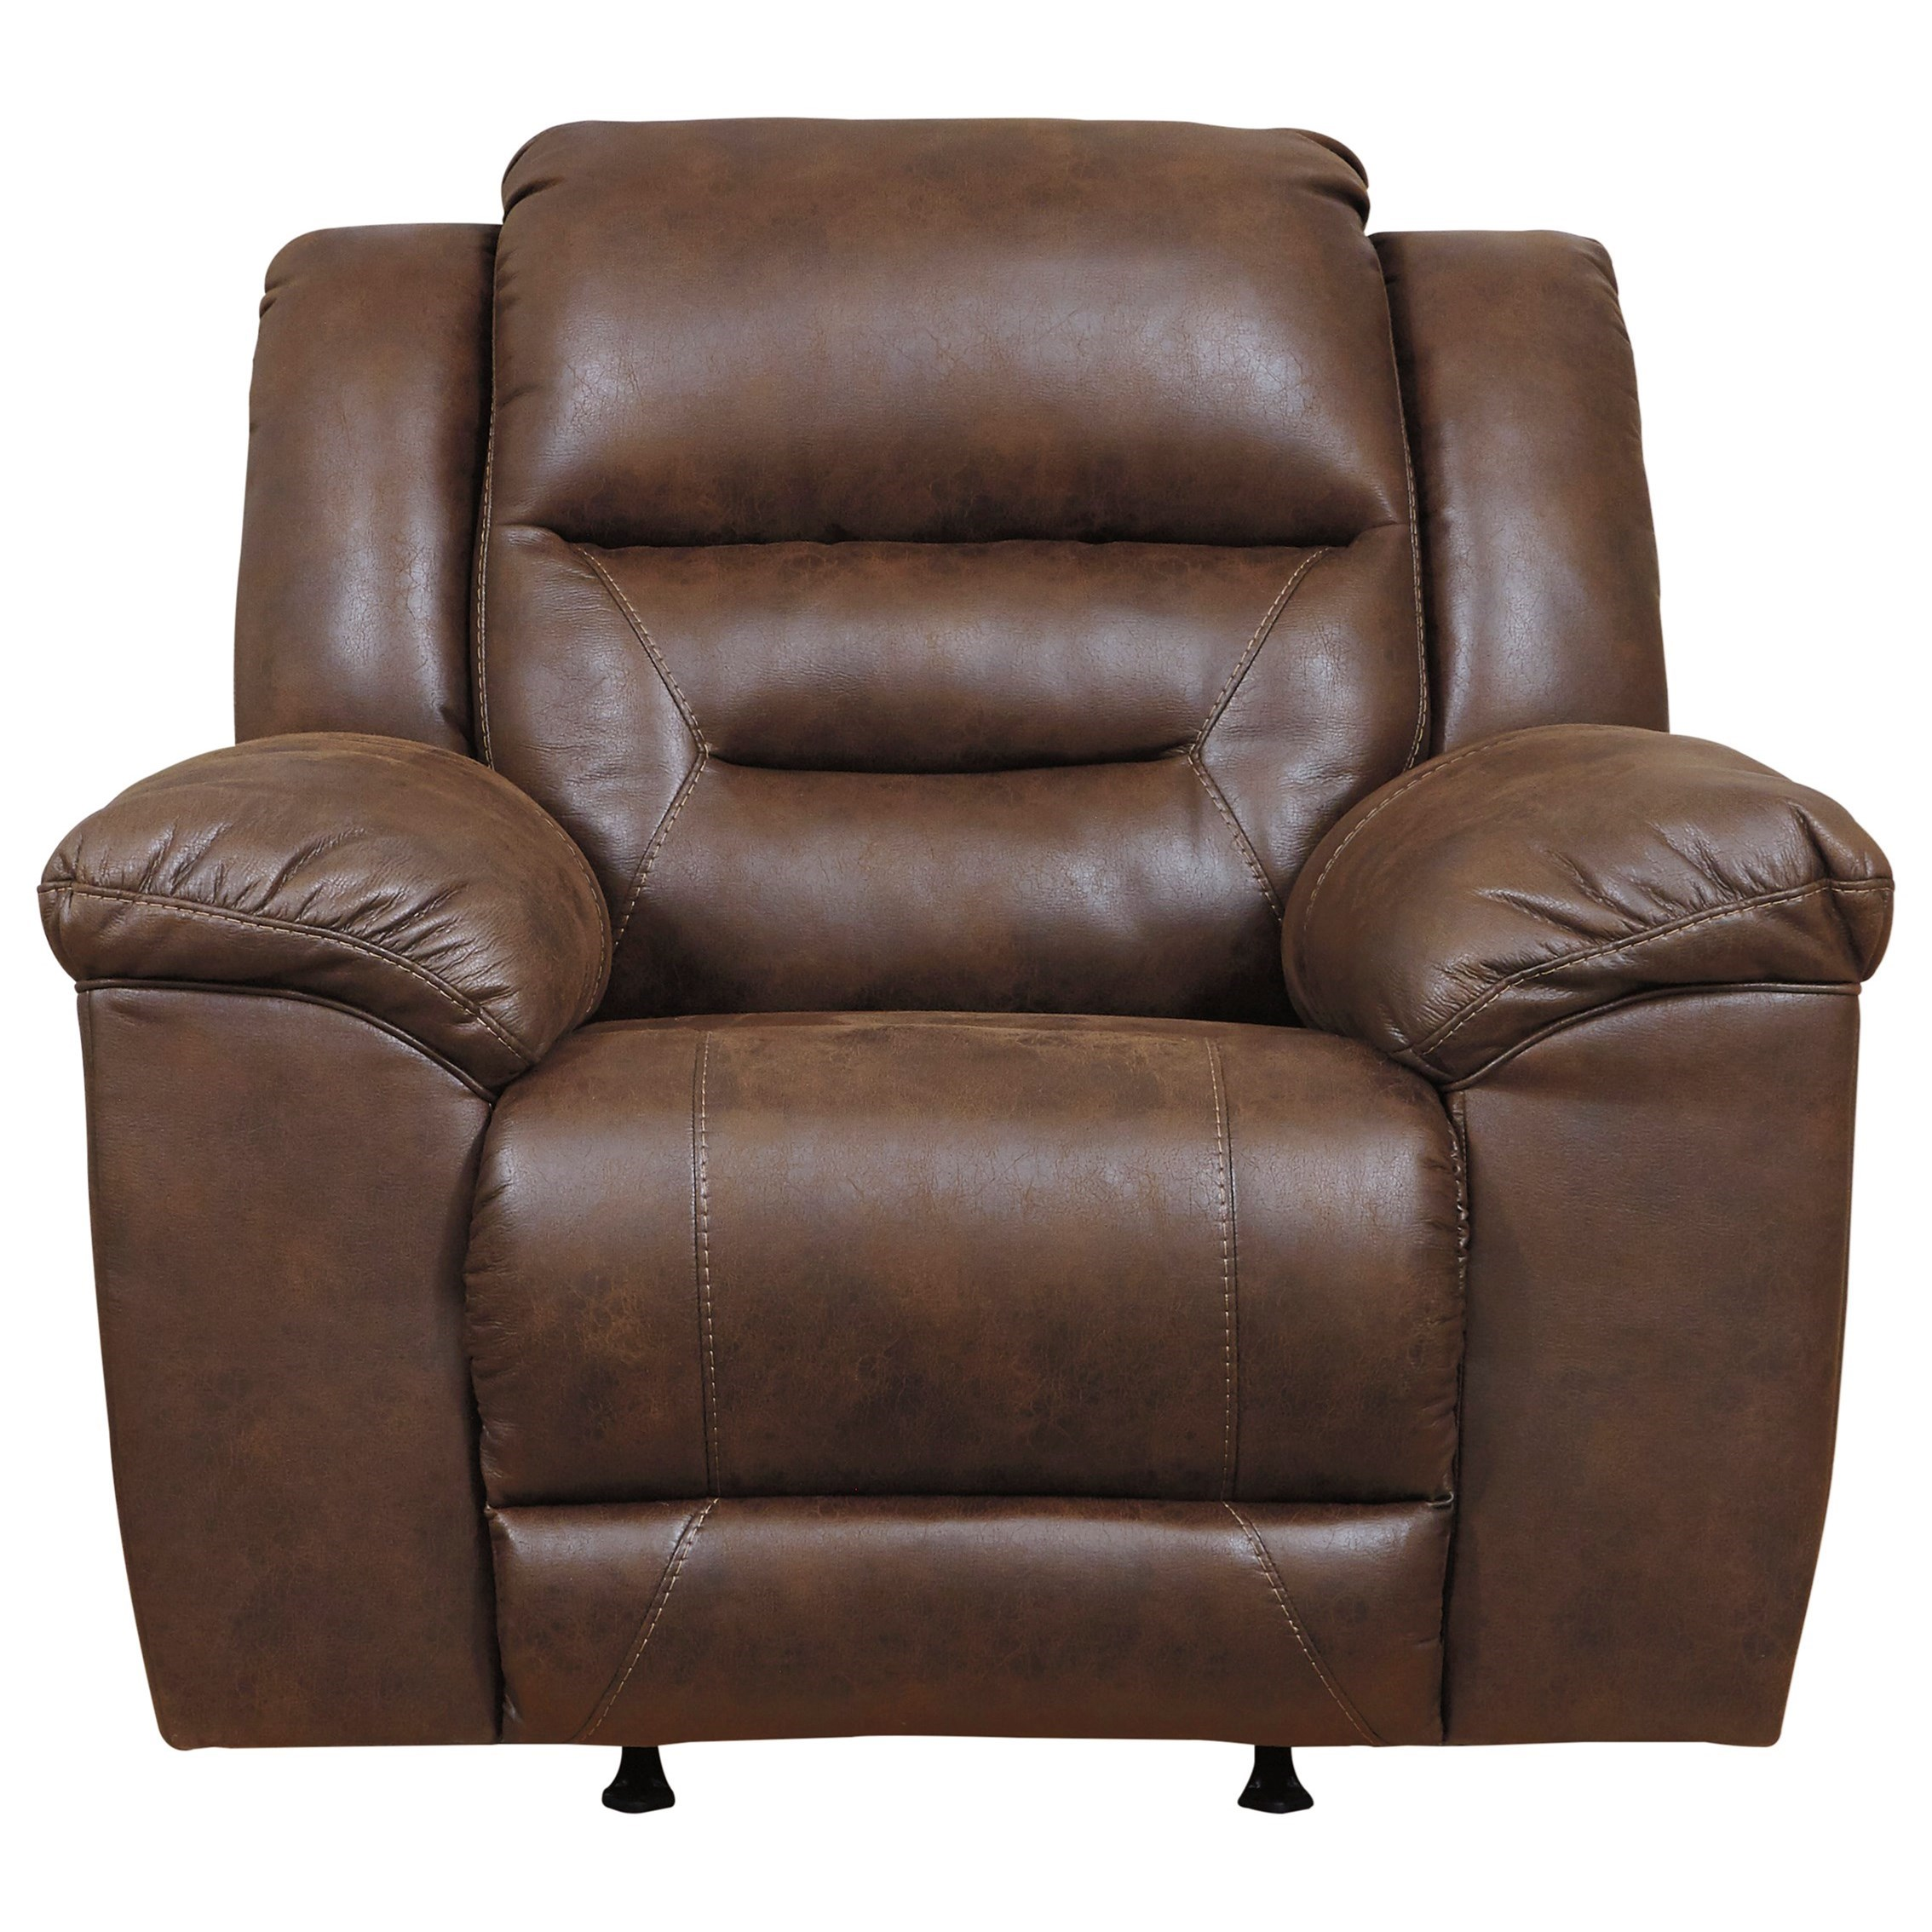 Stoneland Power Rocker Recliner by Signature Design by Ashley at Household Furniture